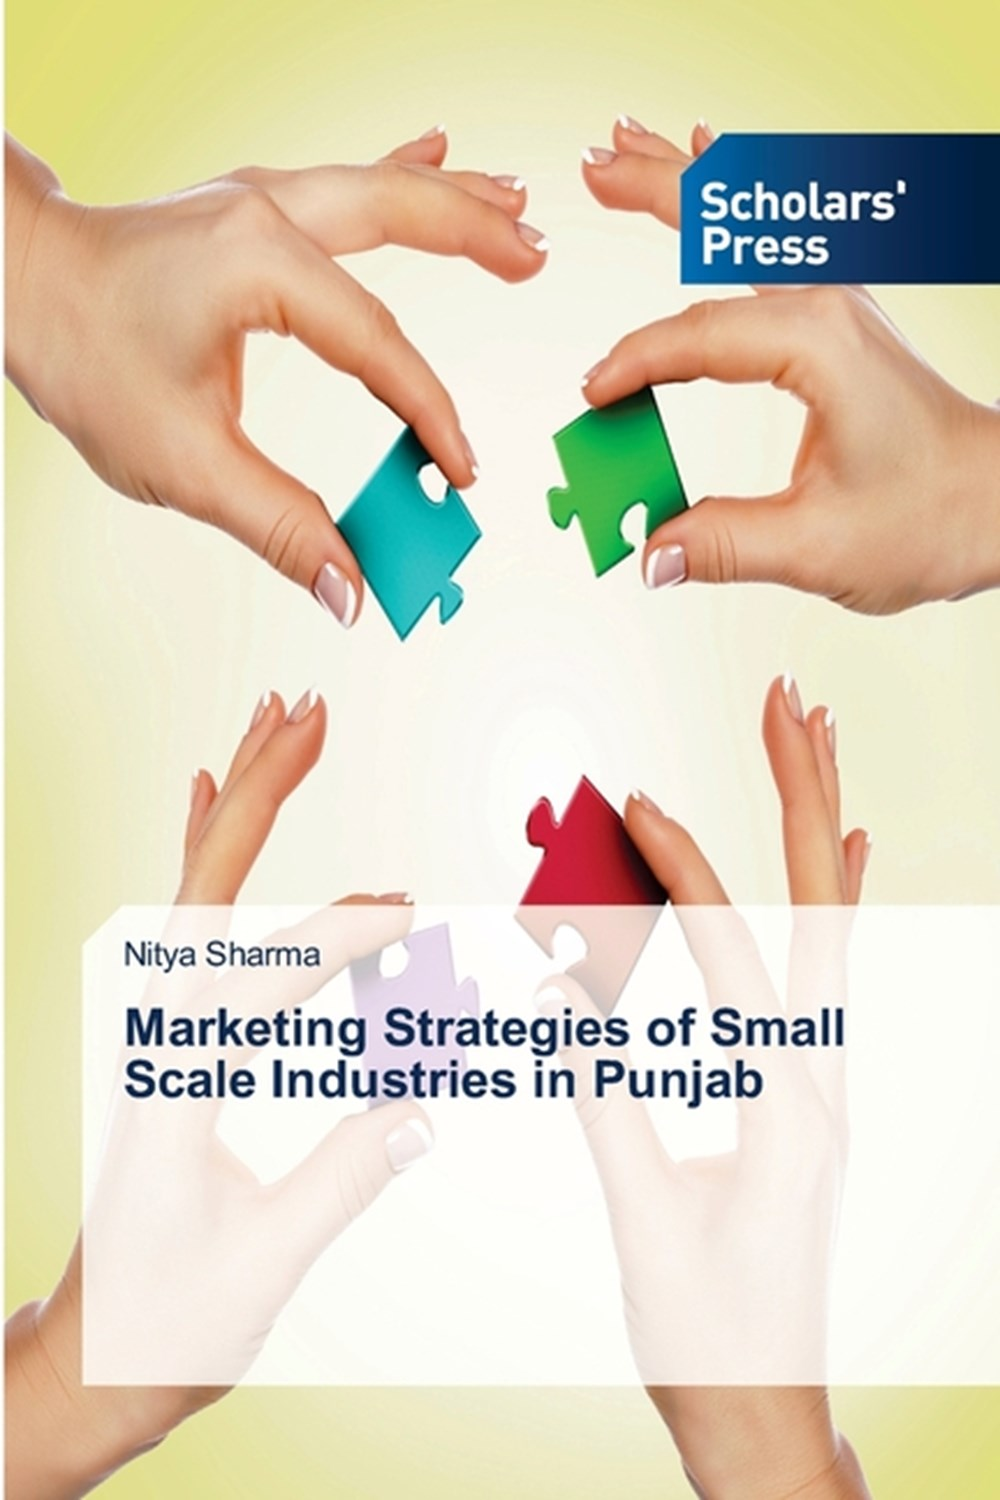 Marketing Strategies of Small Scale Industries in Punjab